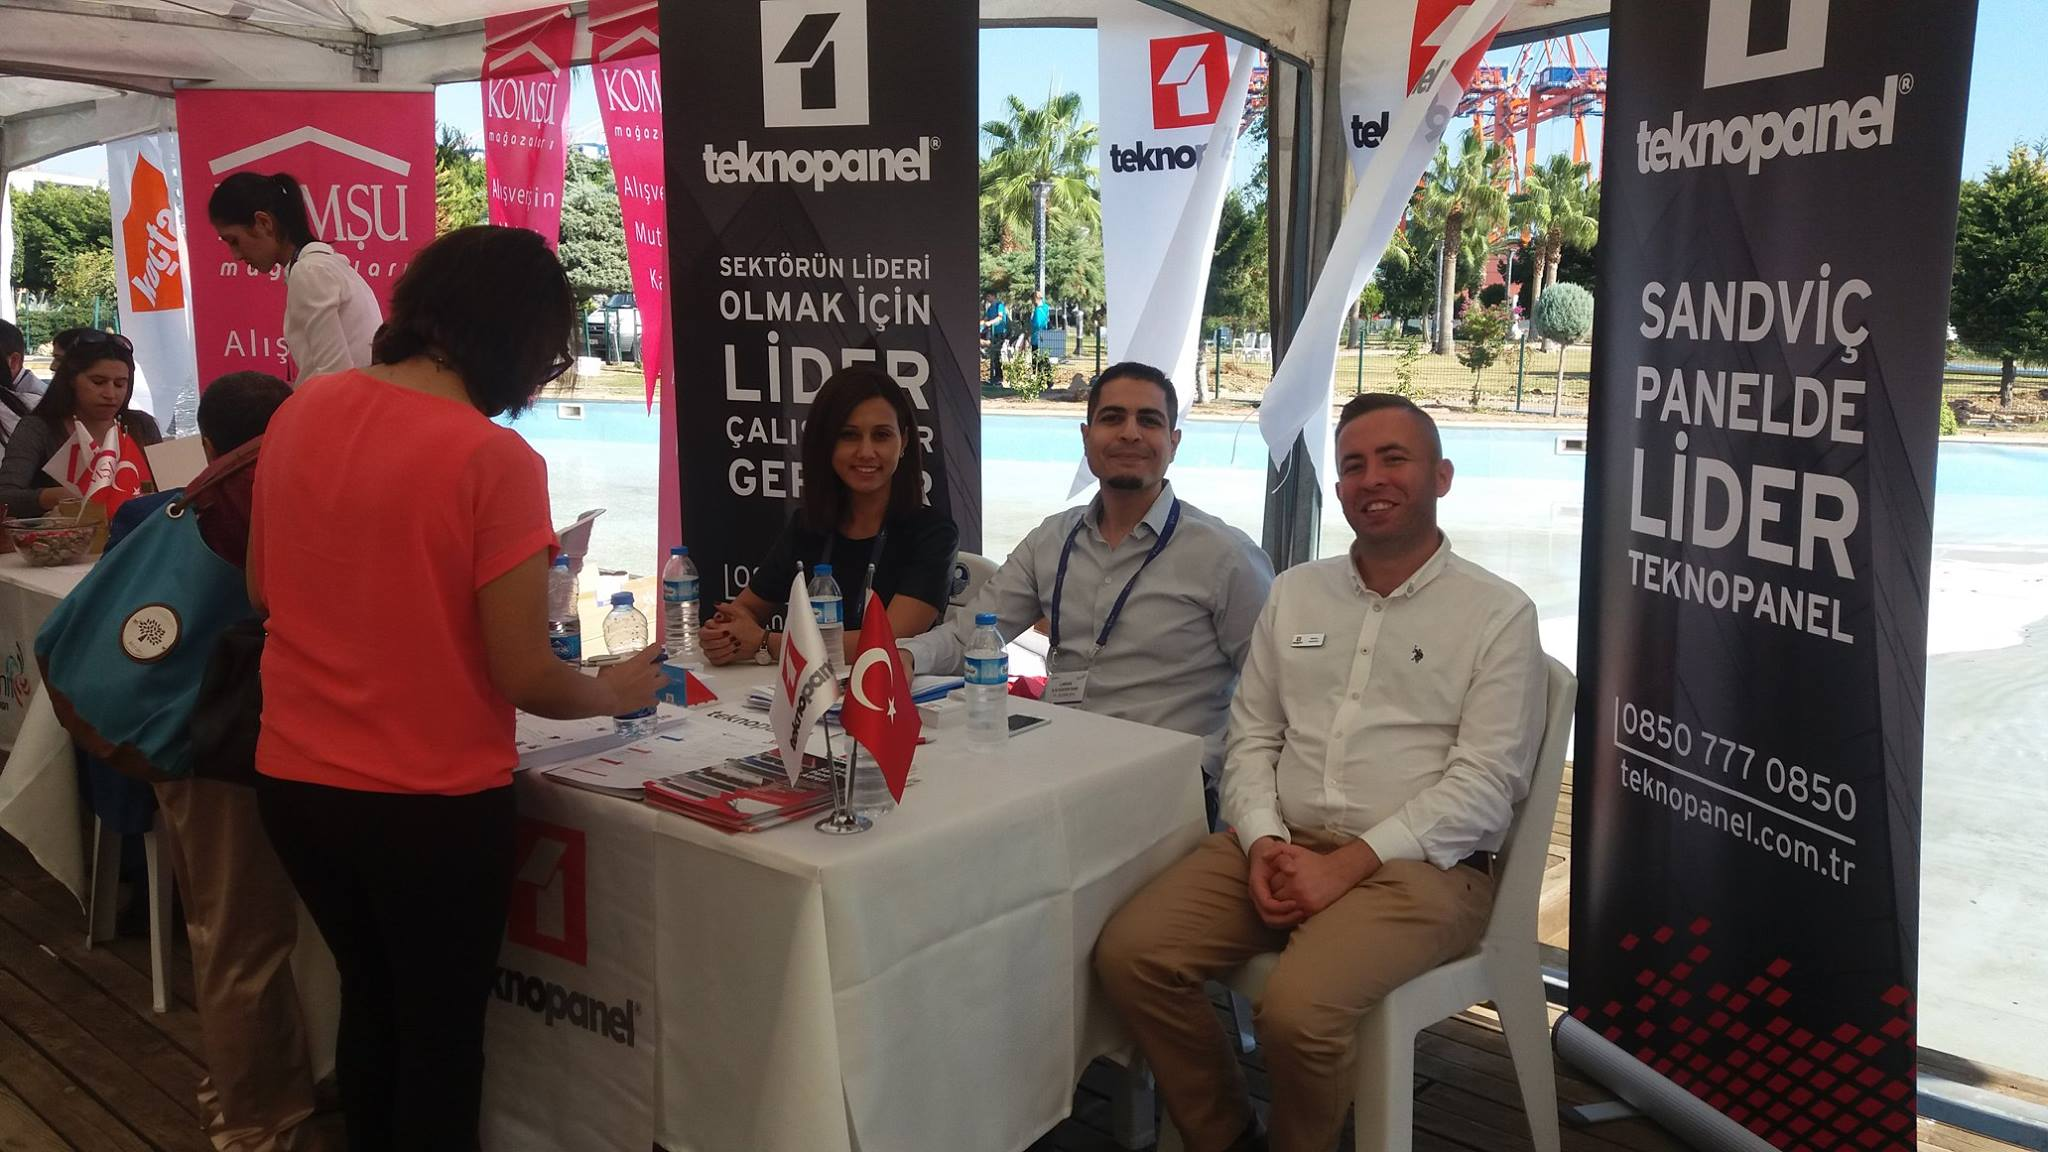 Teknopanel's stand attracted intensive attention at Mersin Job and Career Fair.